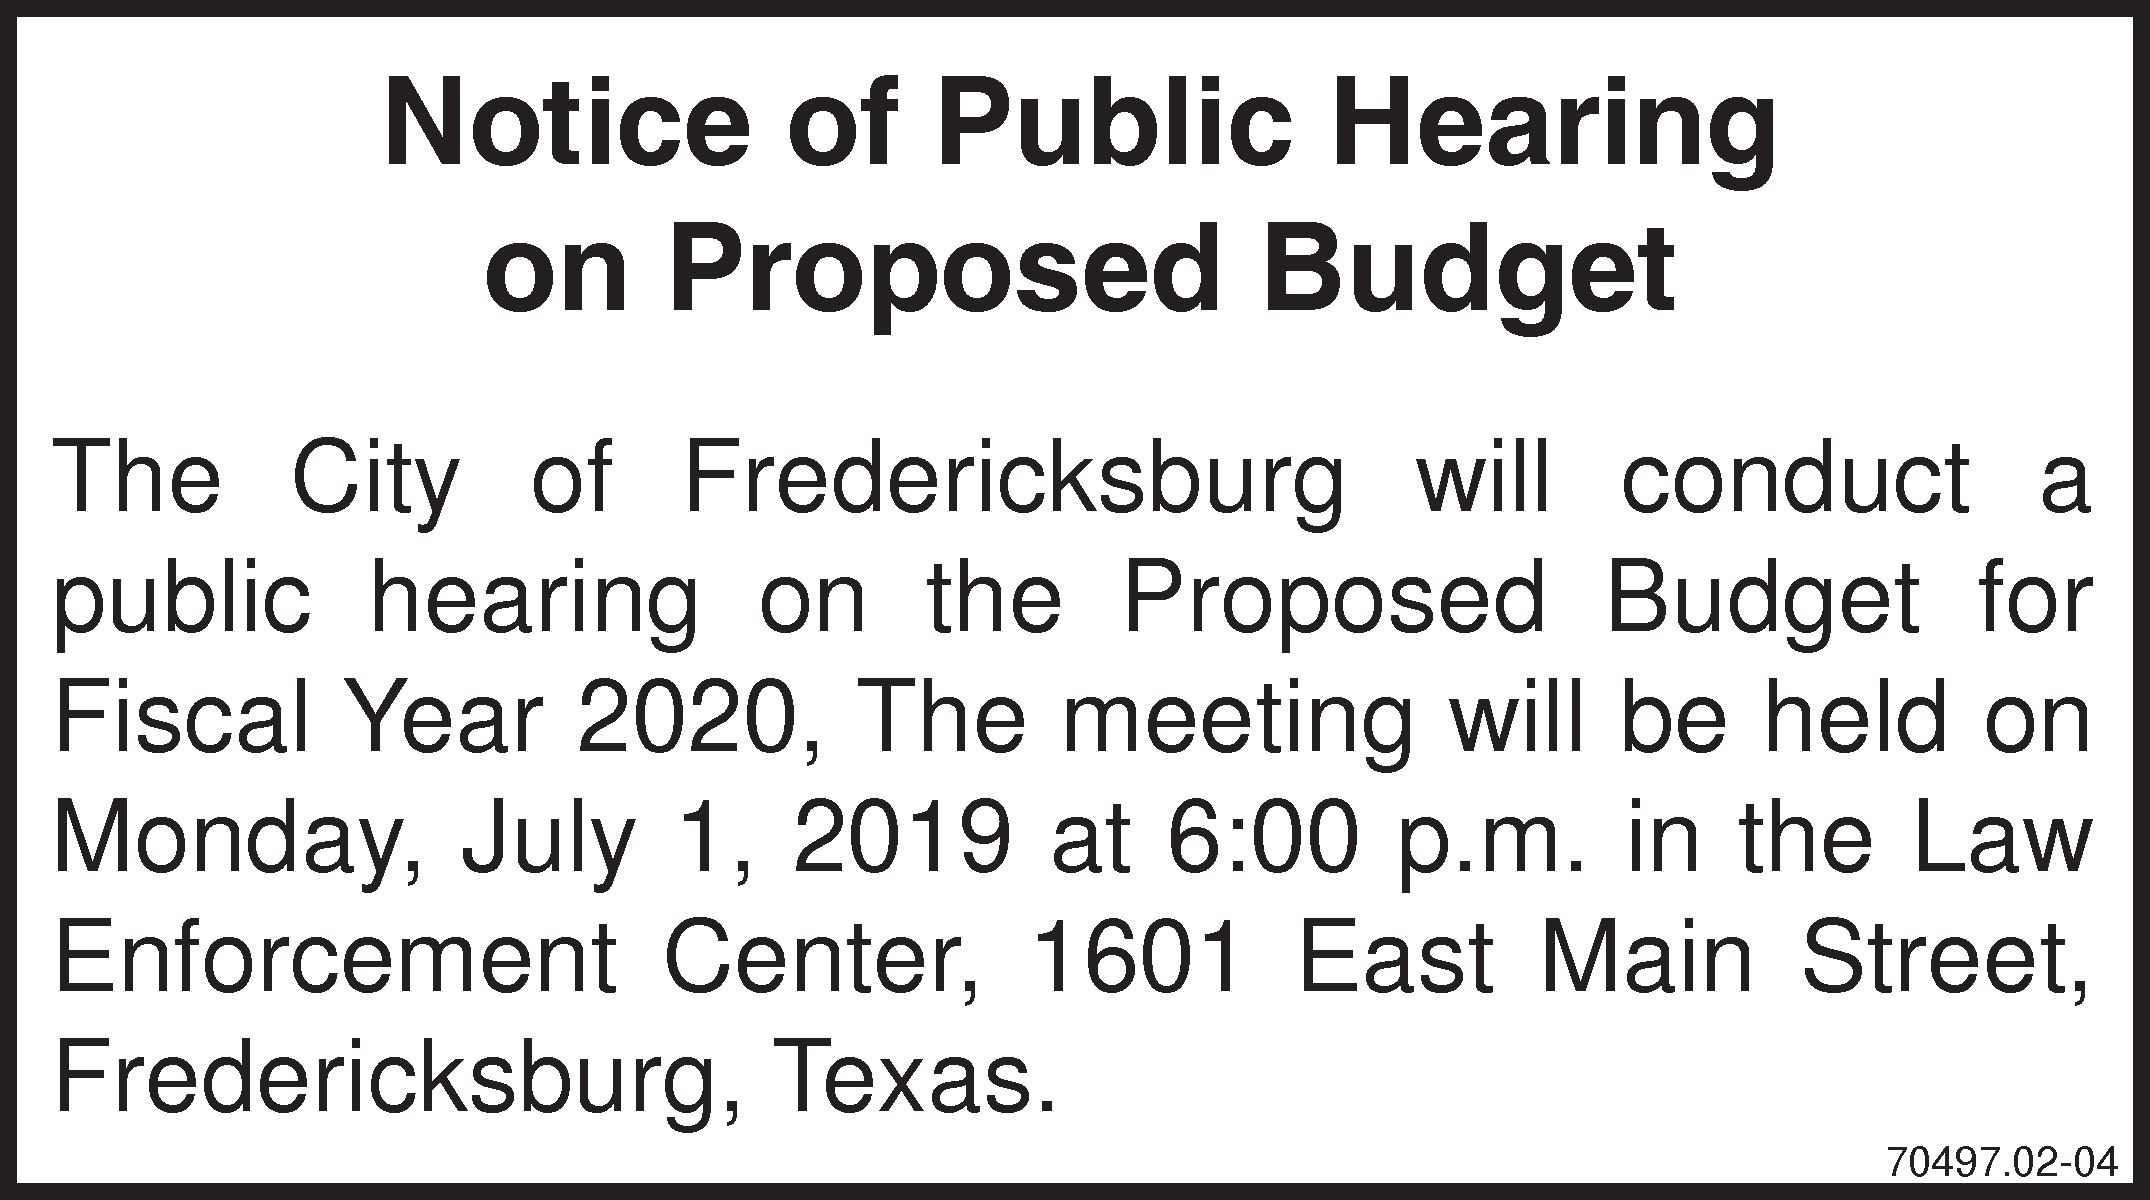 Notice of Public Hearing FY2020 Budget